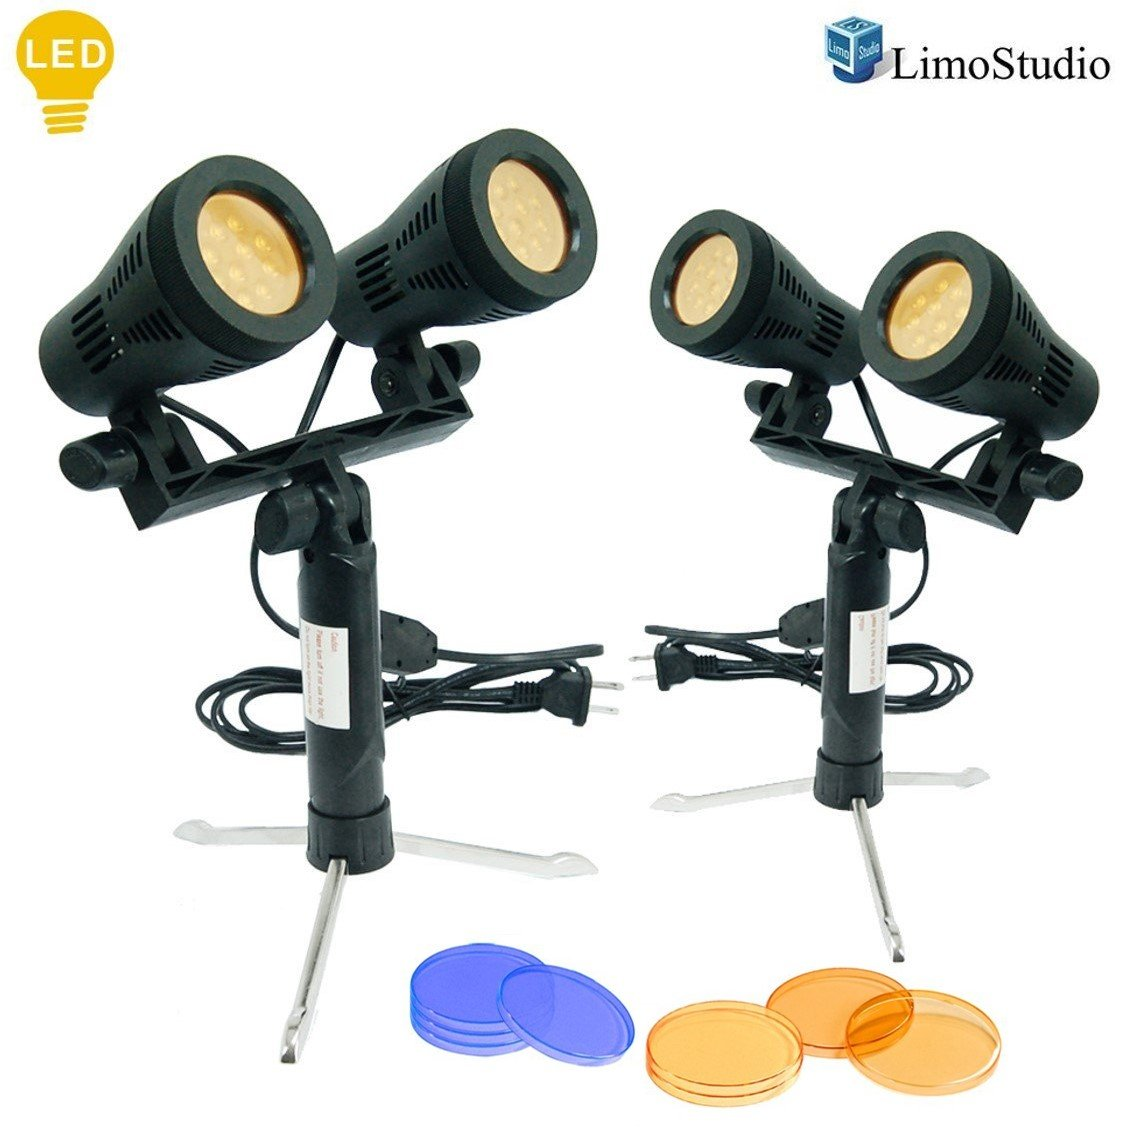 LimoStudio 2 Sets Continuous 600 Lumen LED Portable Lighting Lamp for Table Top Photography Photo Studio With Color Filters, AGG2347